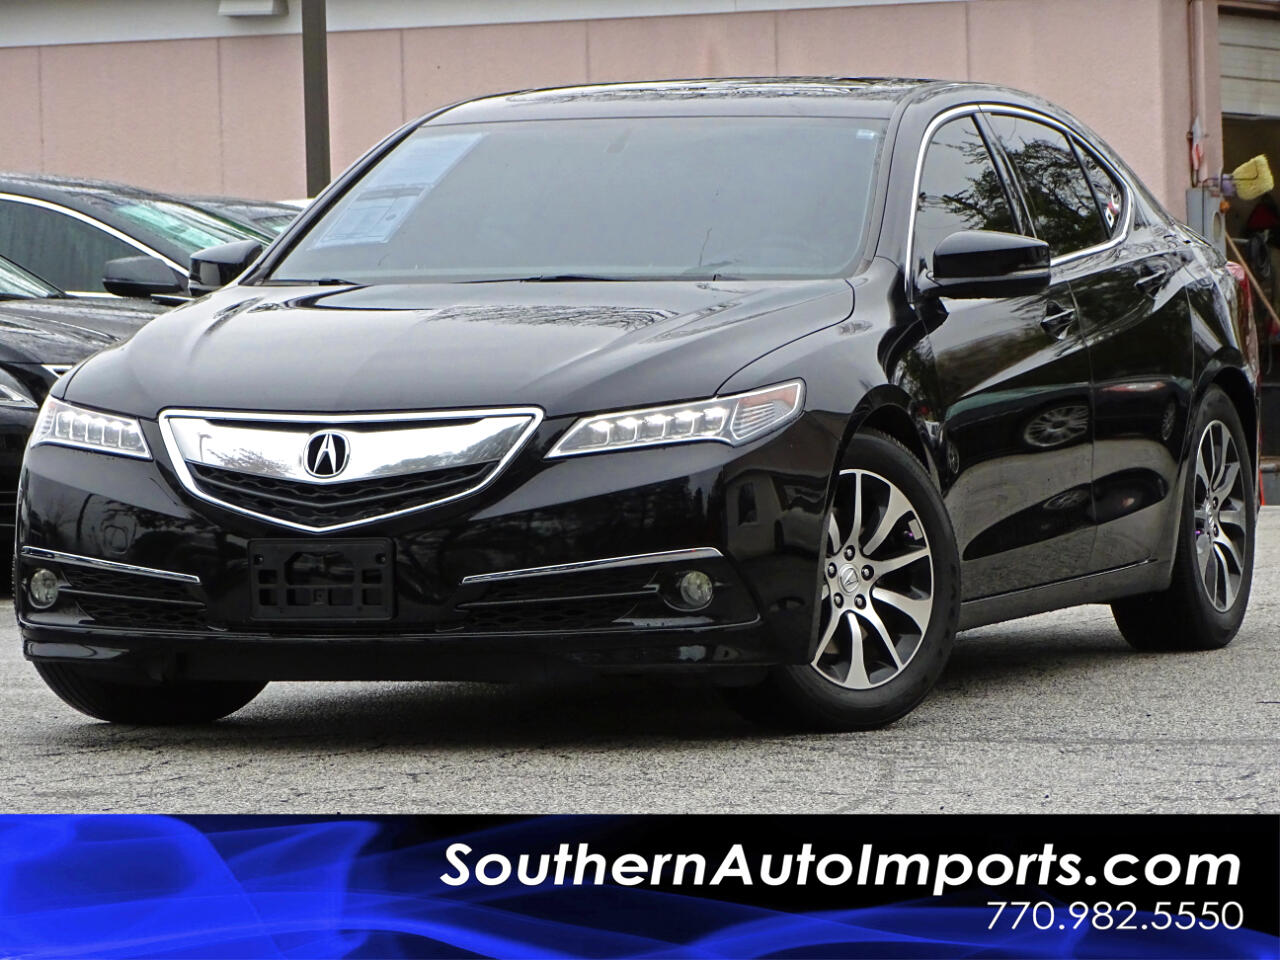 2016 Acura TLX Red Leather Interior w/Back Up Camera